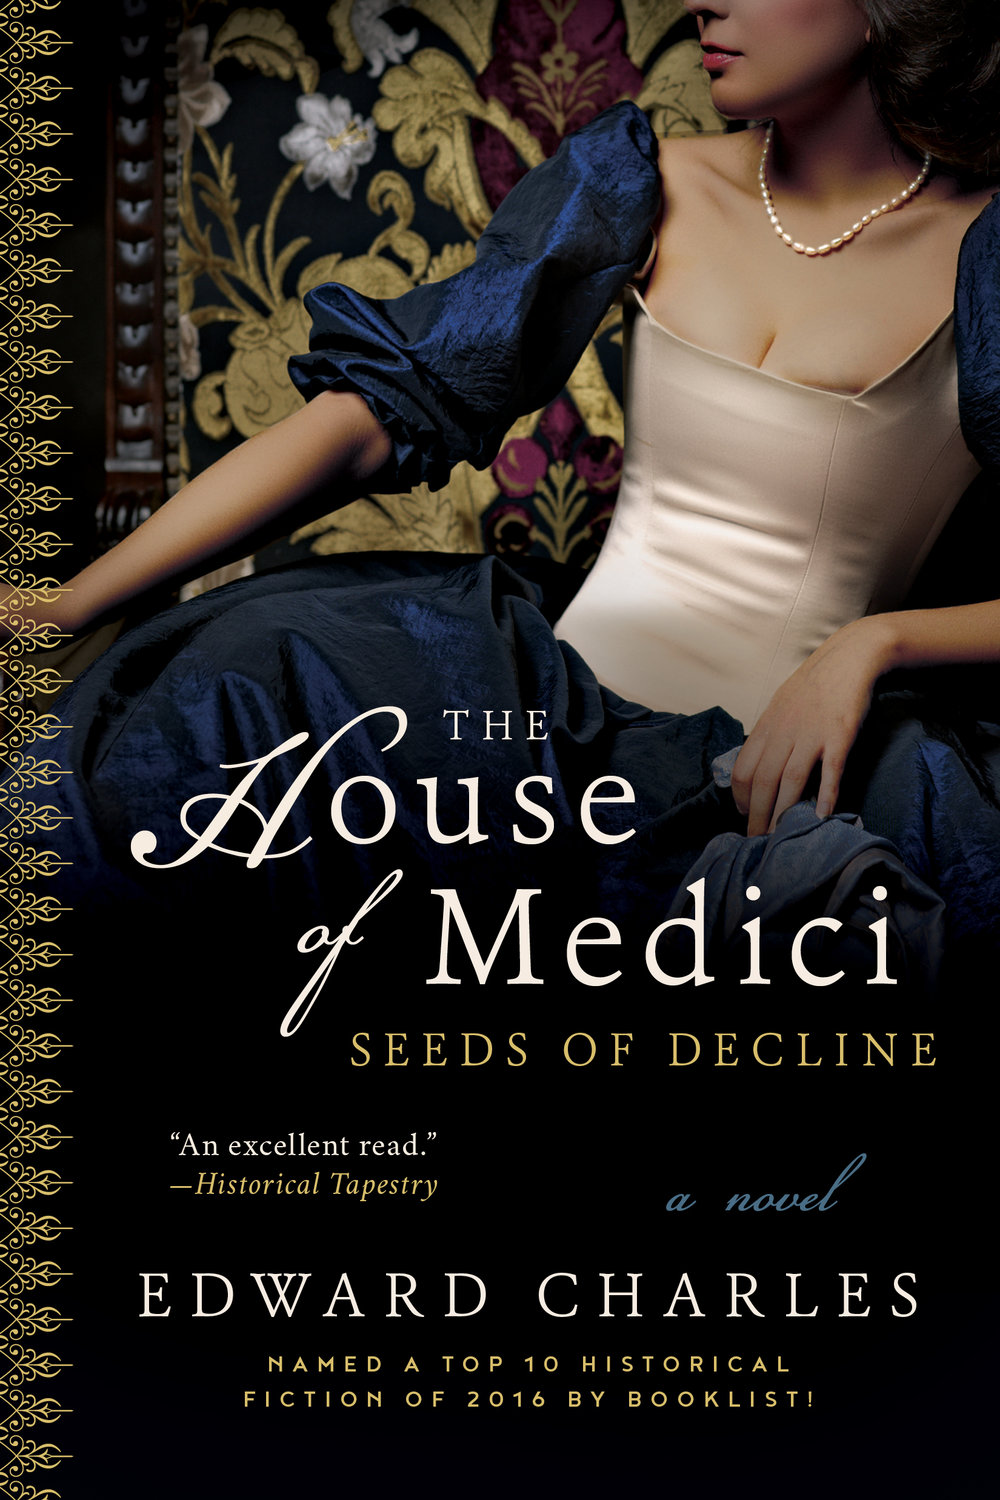 House of Medici Seeds of Decline.jpg